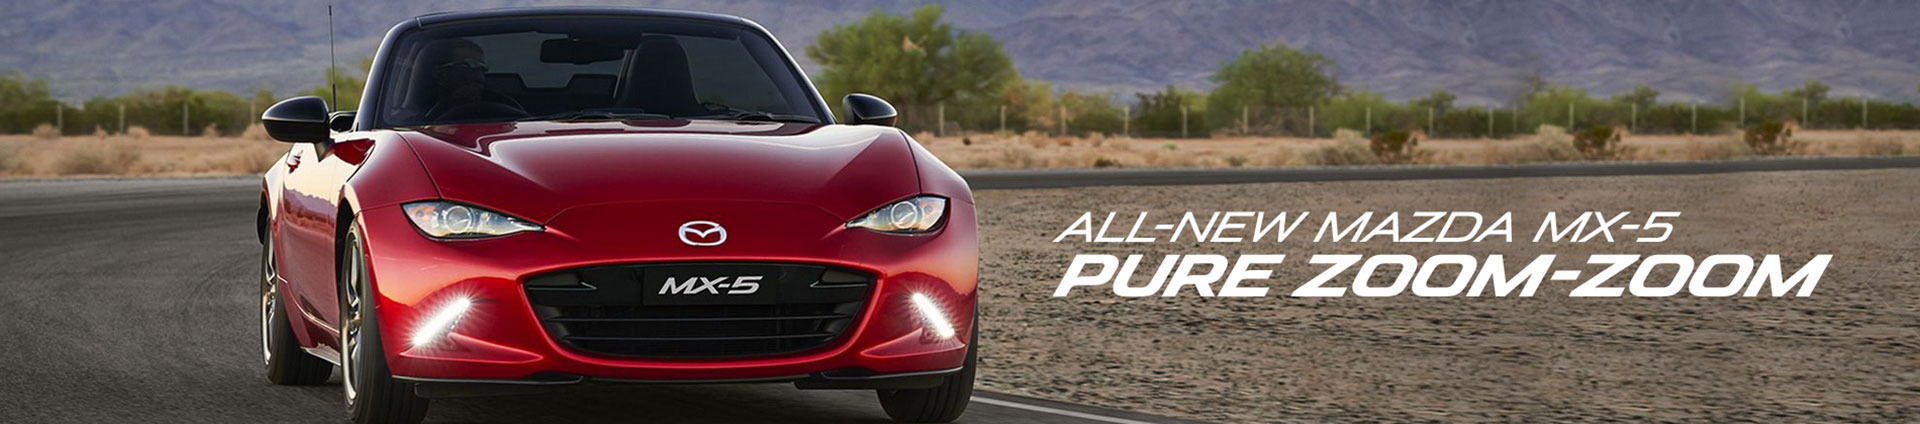 All New Mazda MX-5